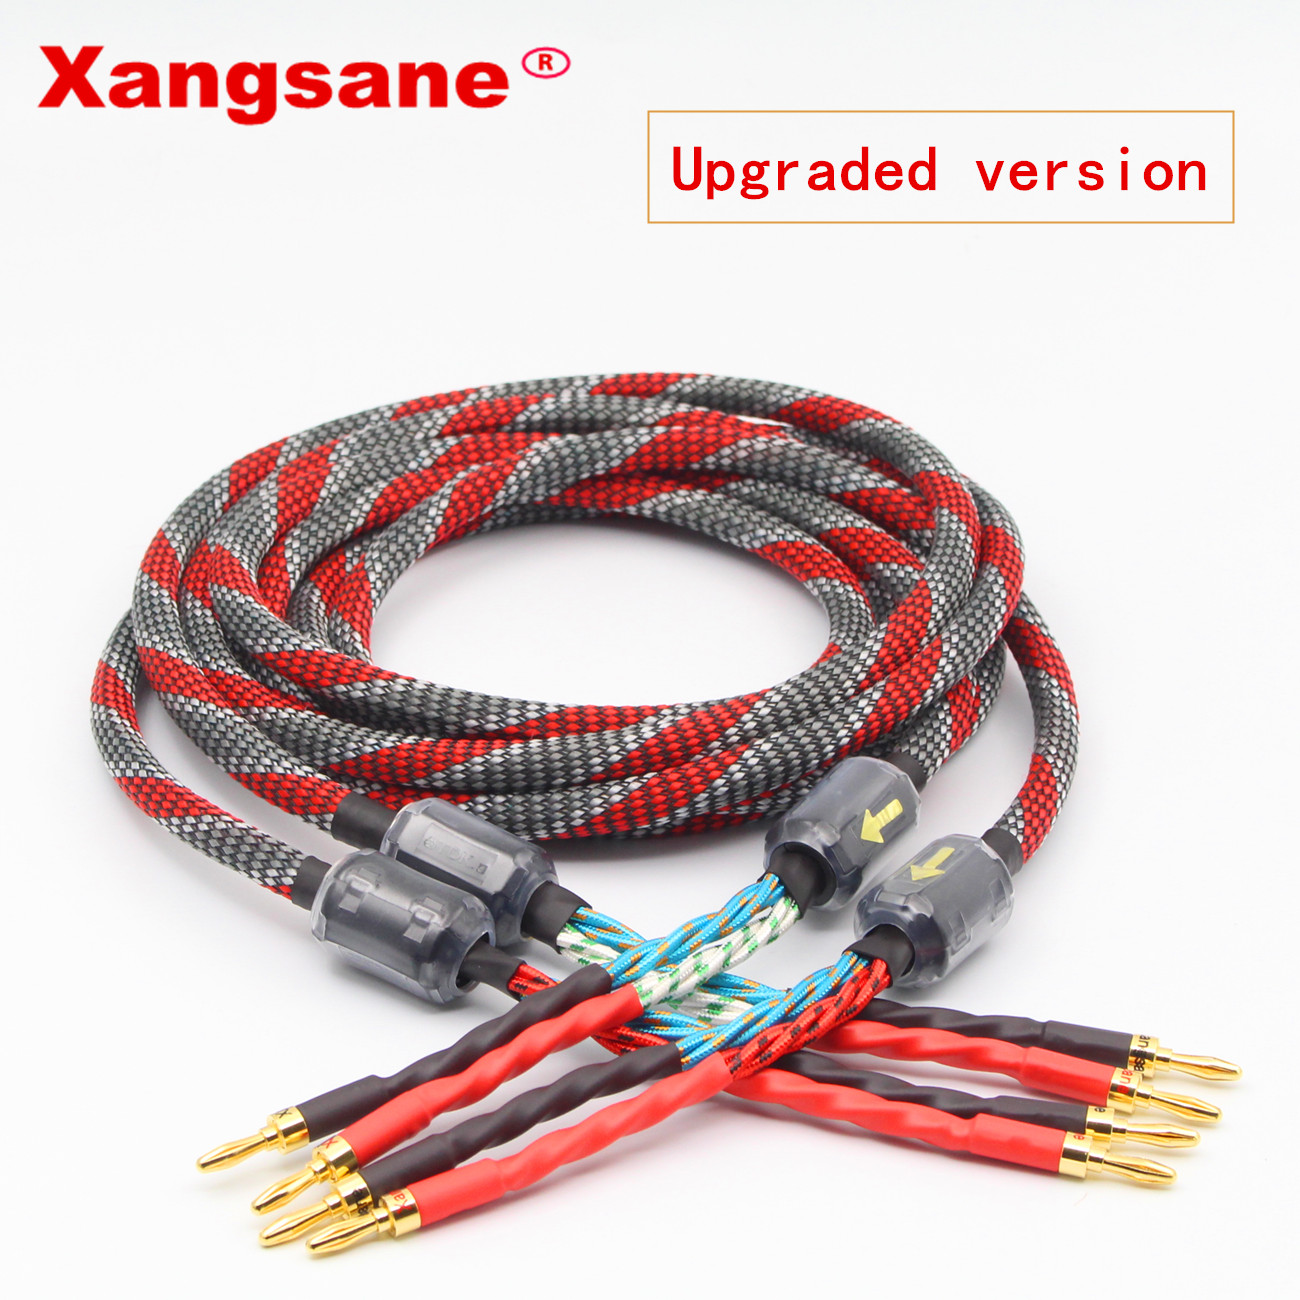 One Pair Xangsane  Oxygen-free Copper Audio Speaker Cable HI-FI High-end Amplifier Speaker Cable Banana Head Cable